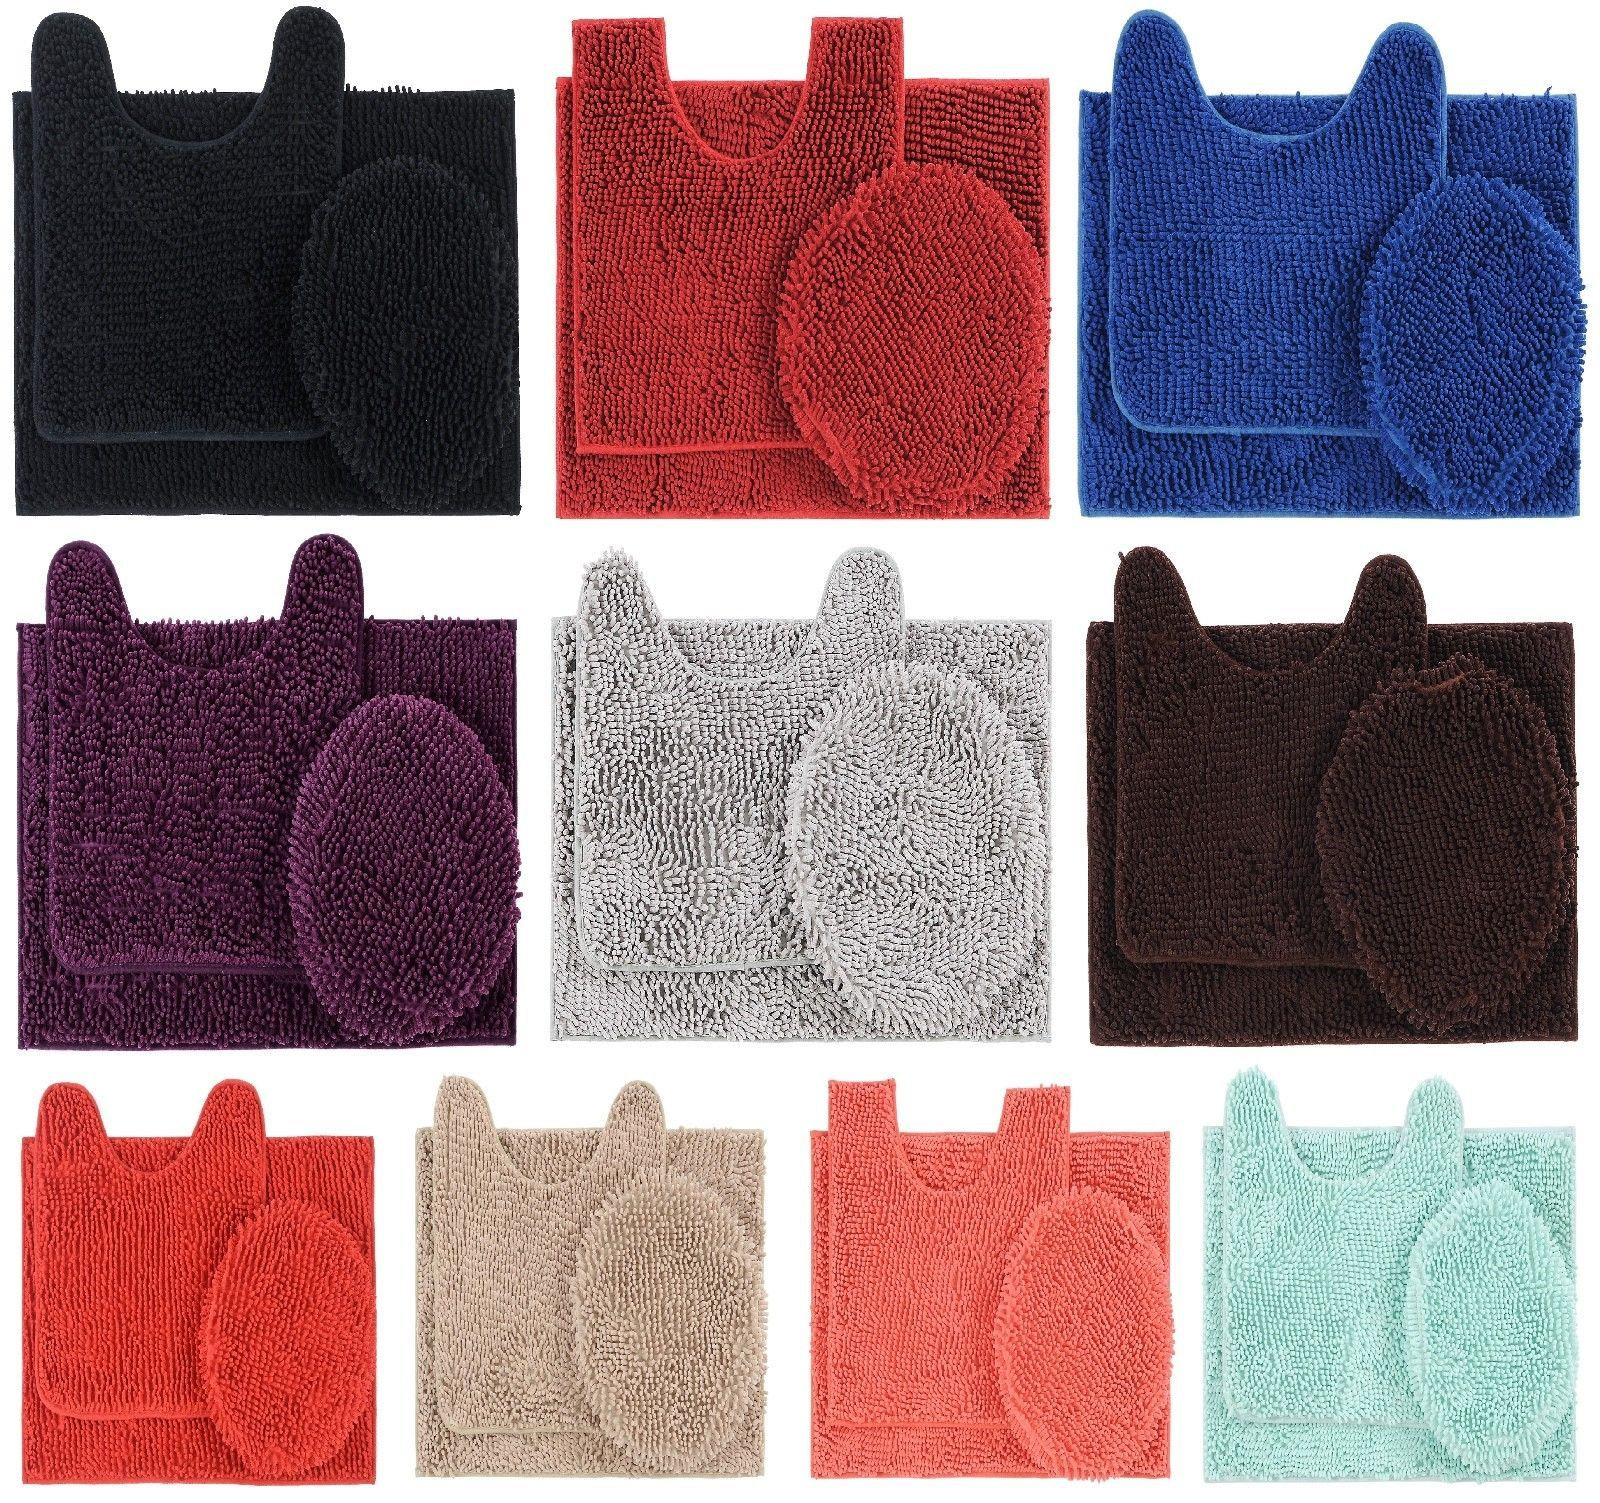 Details About 3 Piece Shaggy Chenille Bathroom Rug Set Bath Mat